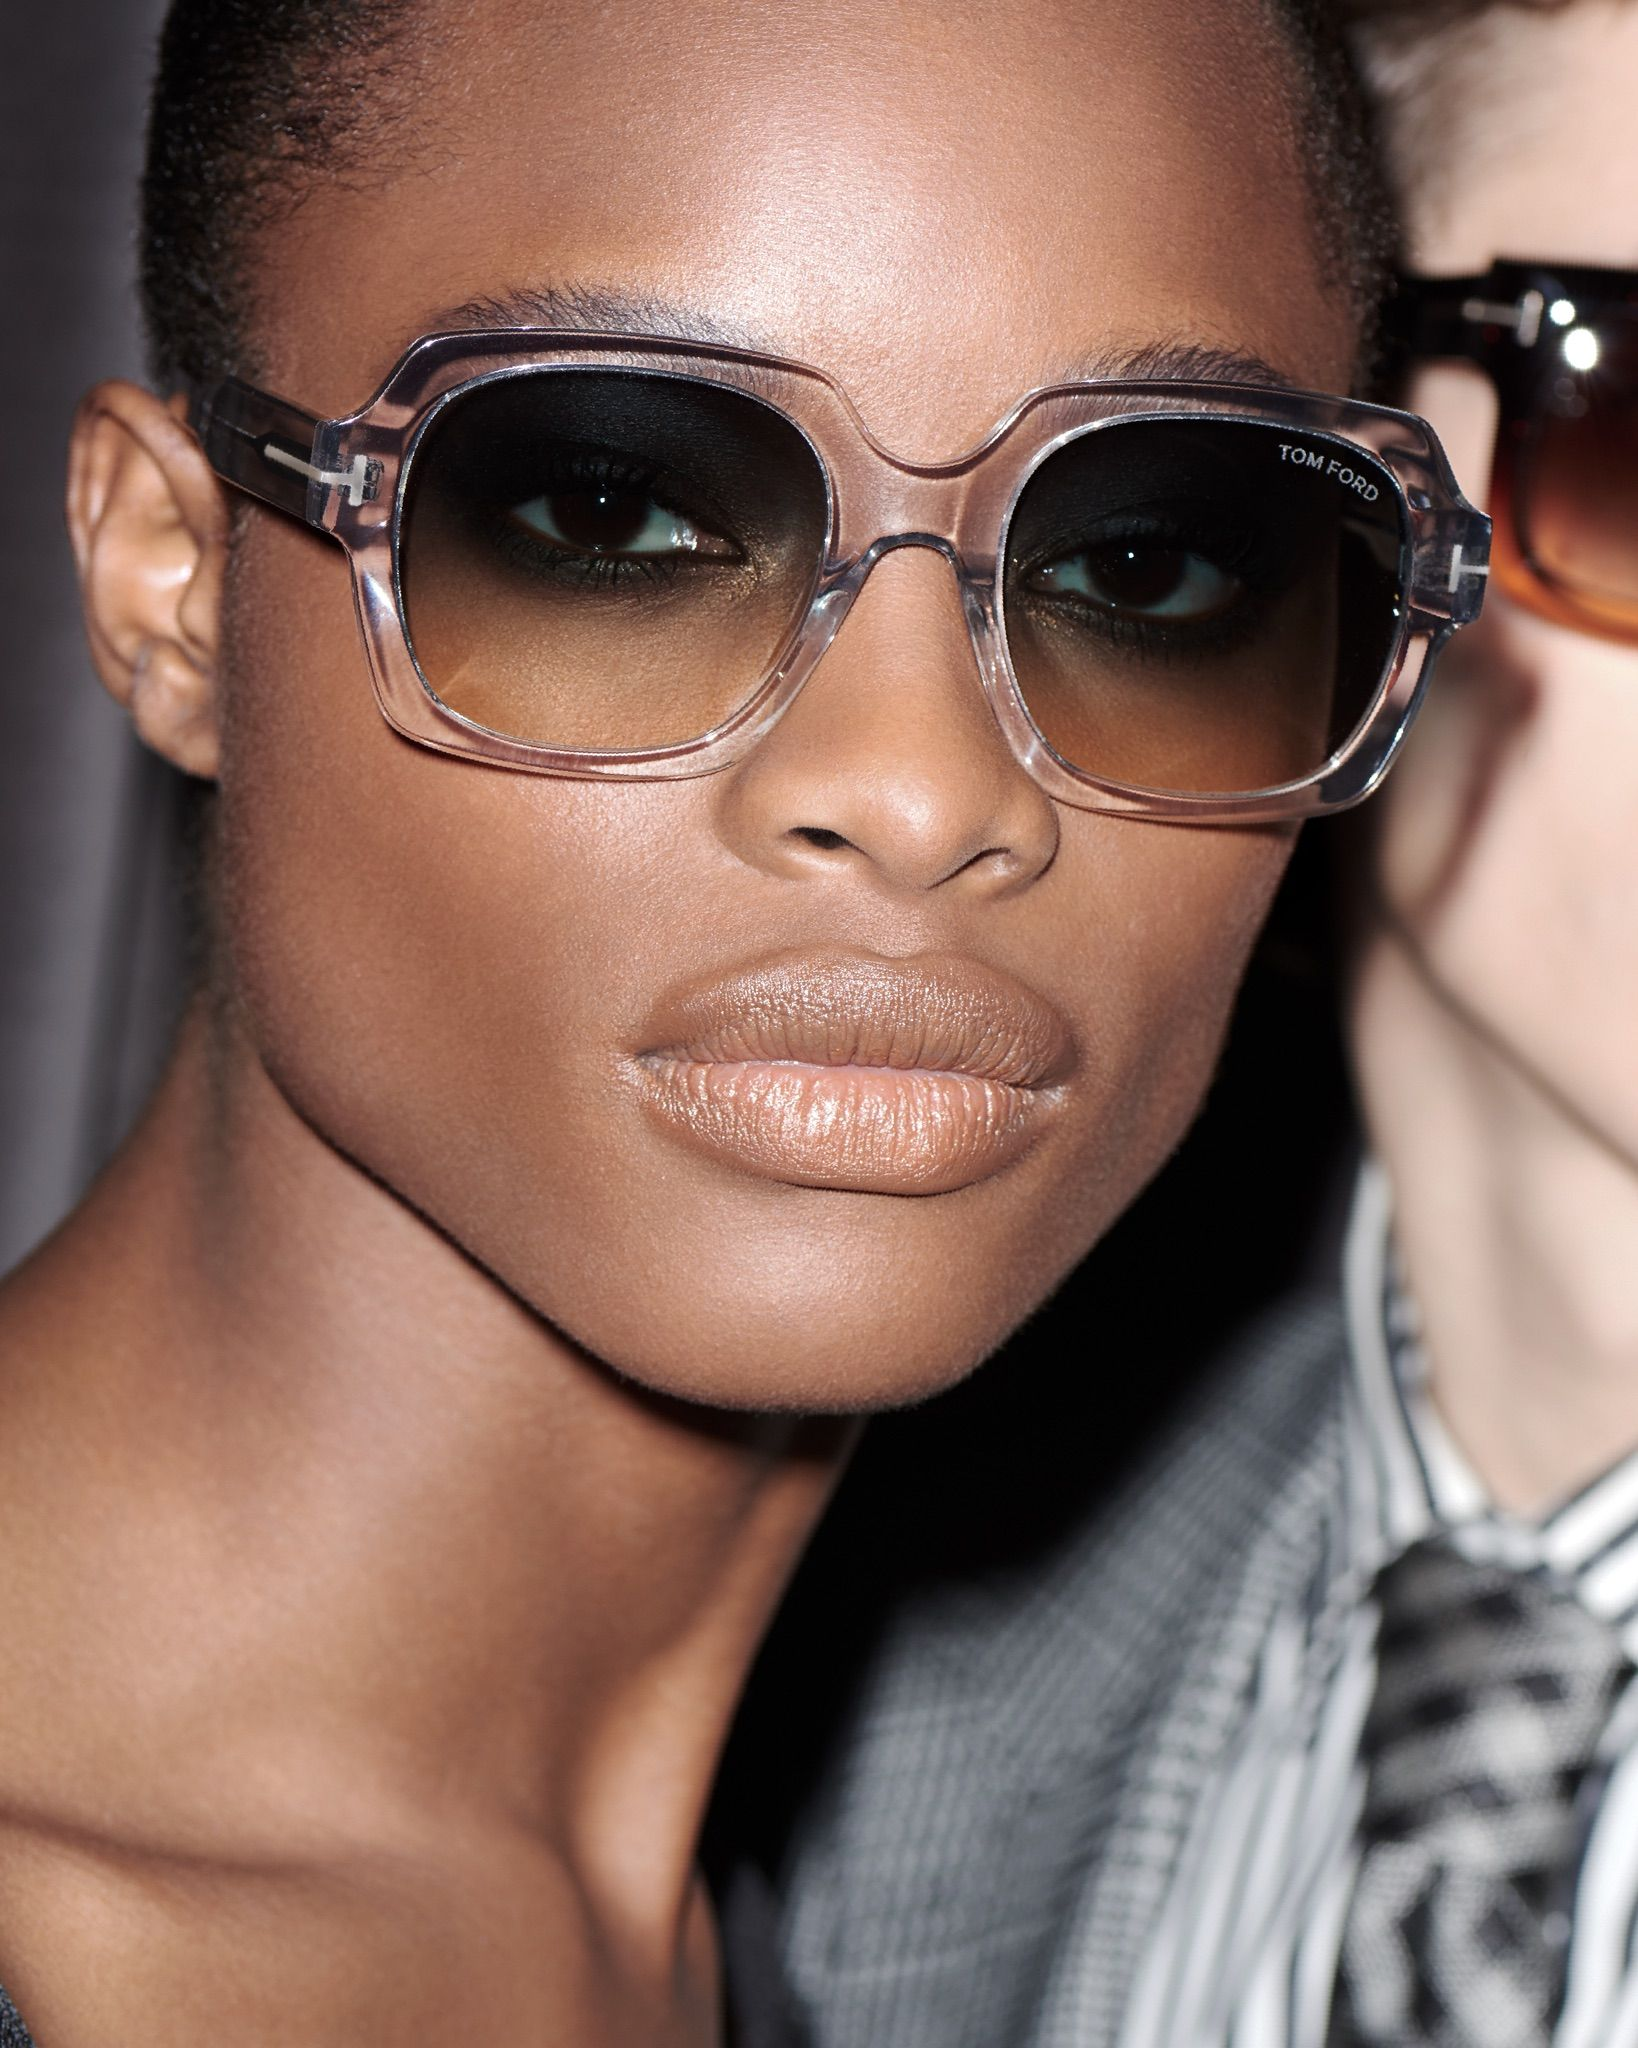 dfa06afe7 Autumn sunglasses in 2019 | TOM FORD EYEWEAR | Tom ford sunglasses ...